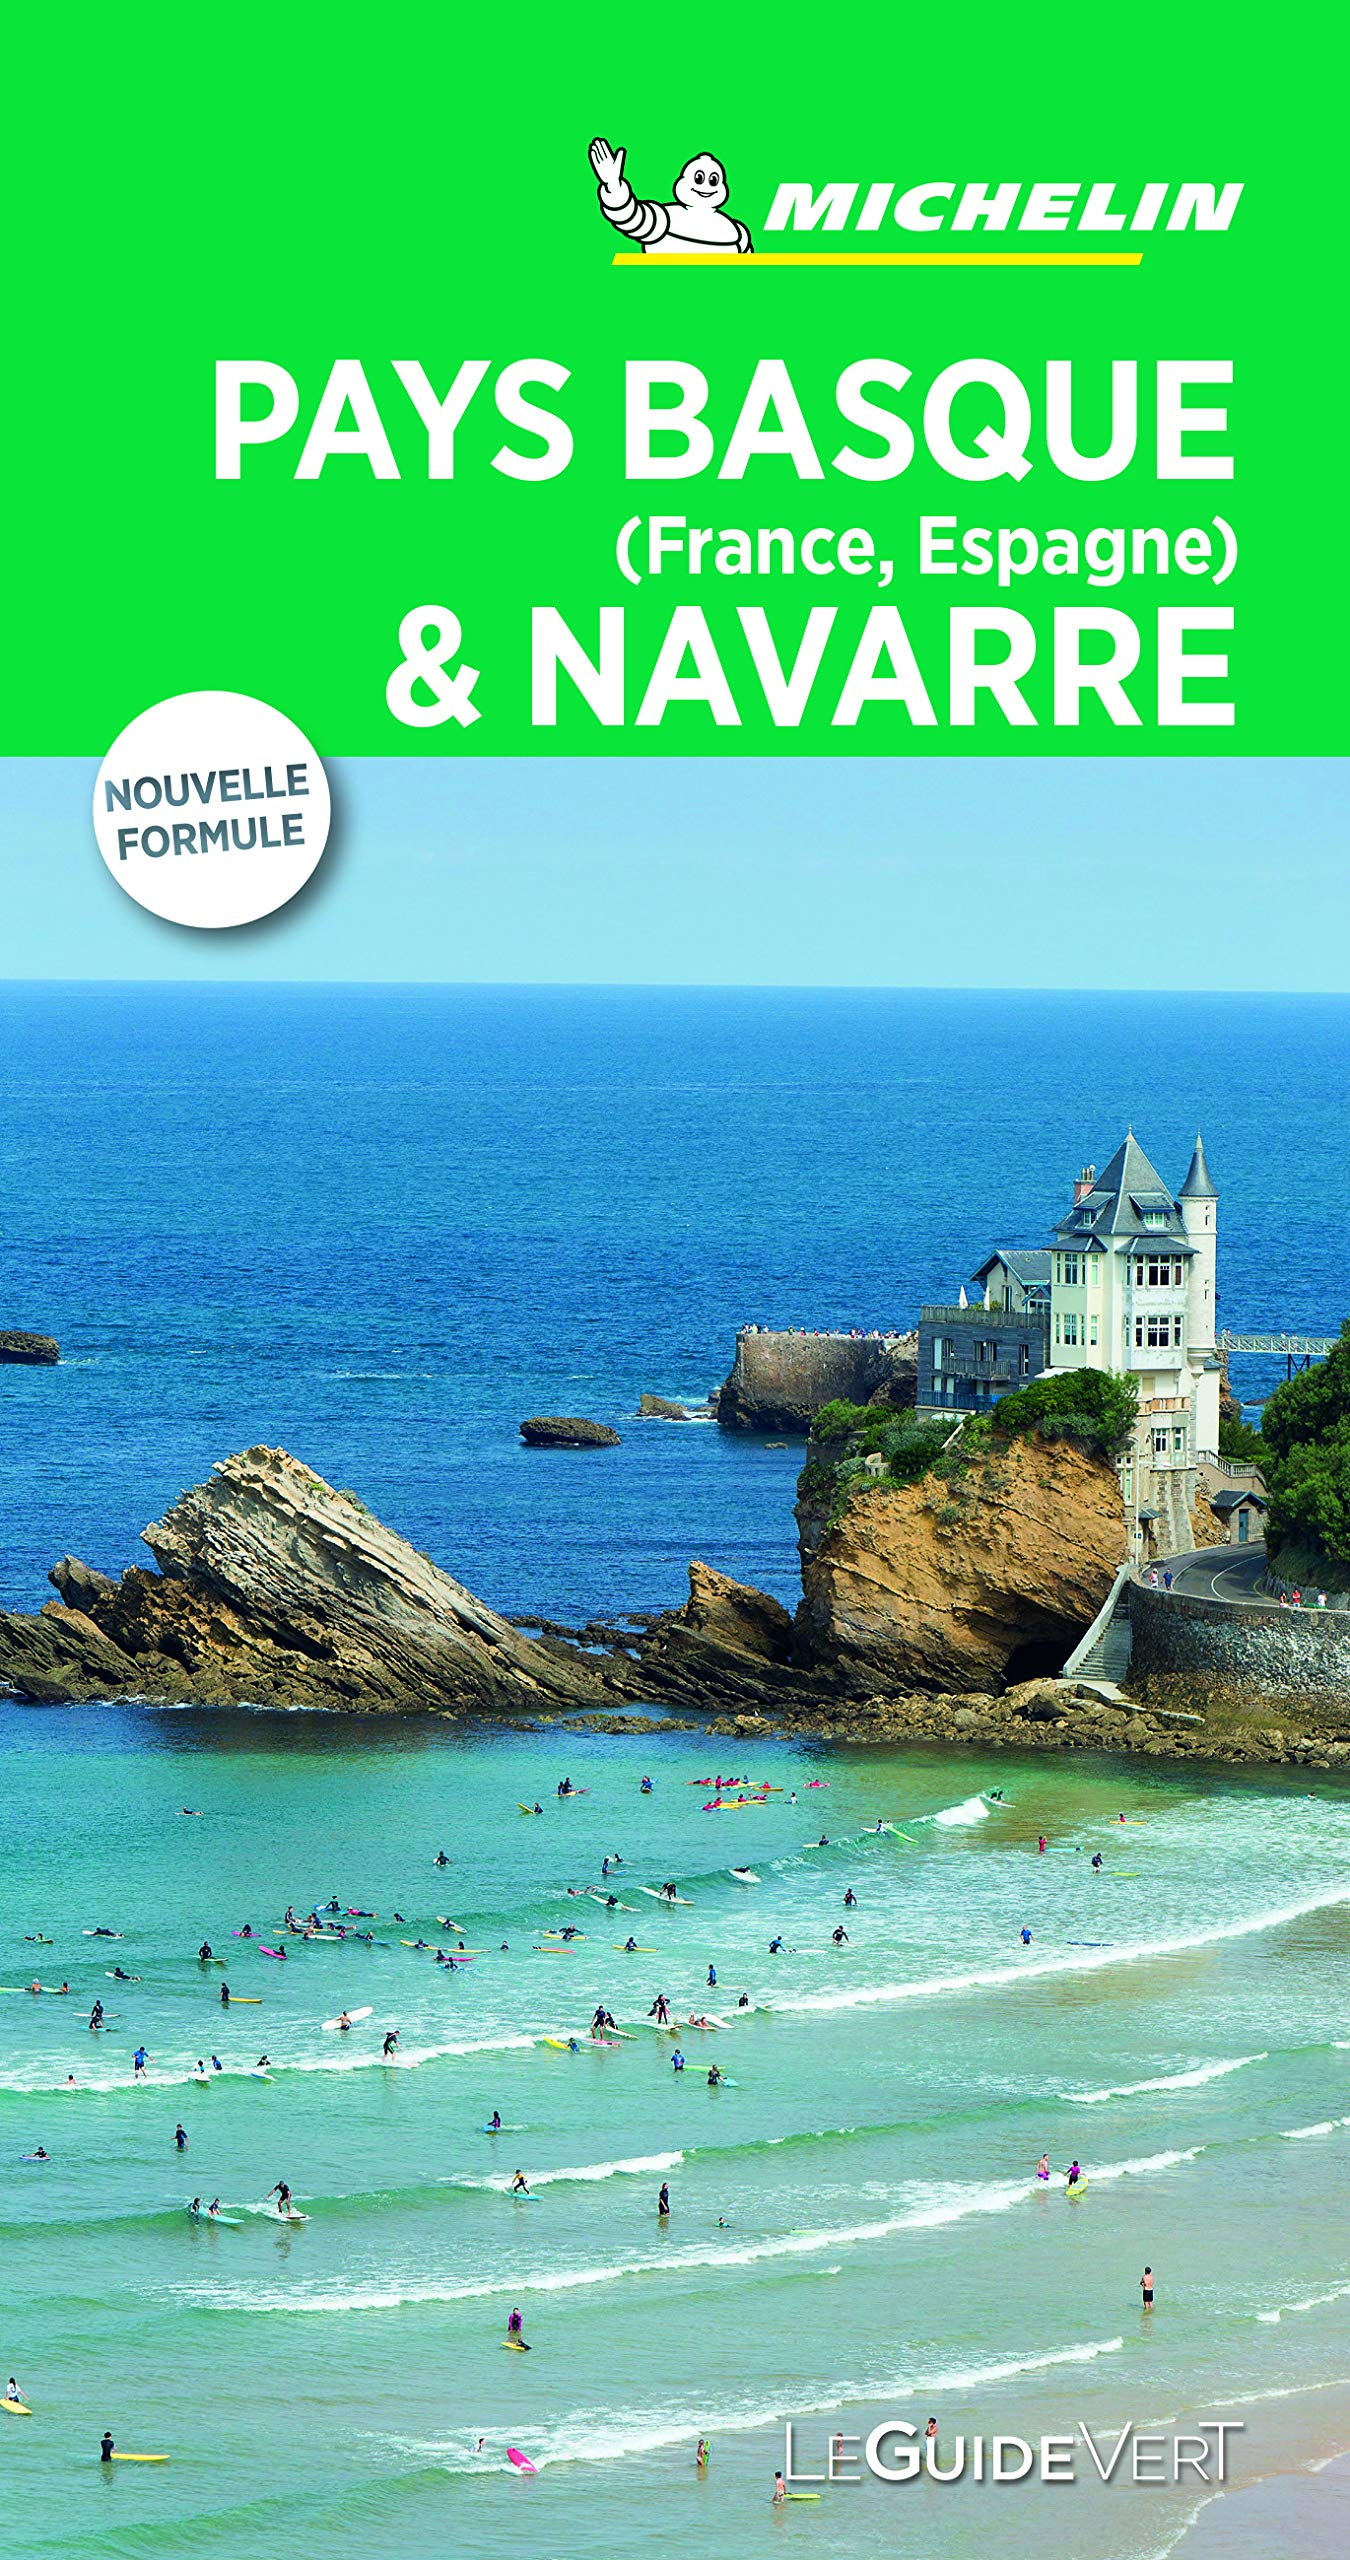 Pays Basque France, Espagne et Navarre Le Guide Vert La Guía Verde Michelin: Amazon.es: MICHELIN: Libros en idiomas ...